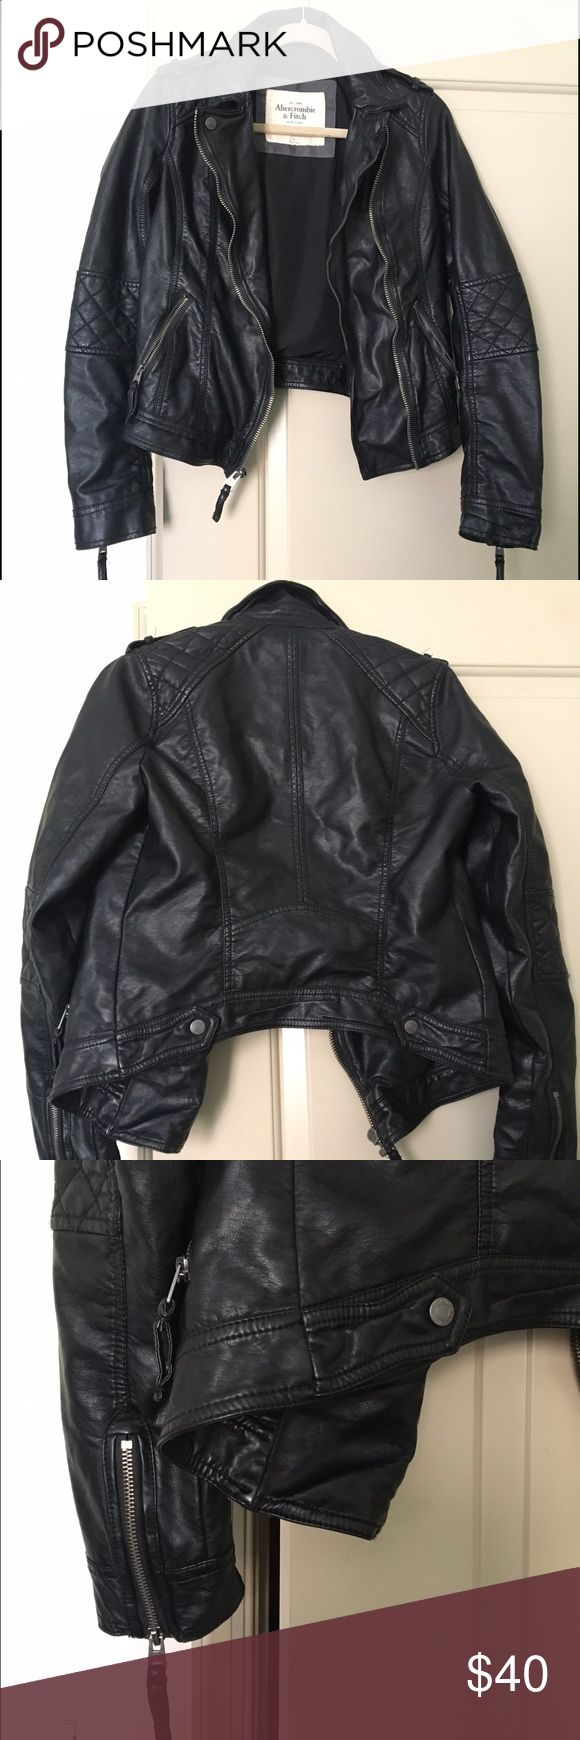 Are leather jackets still in style